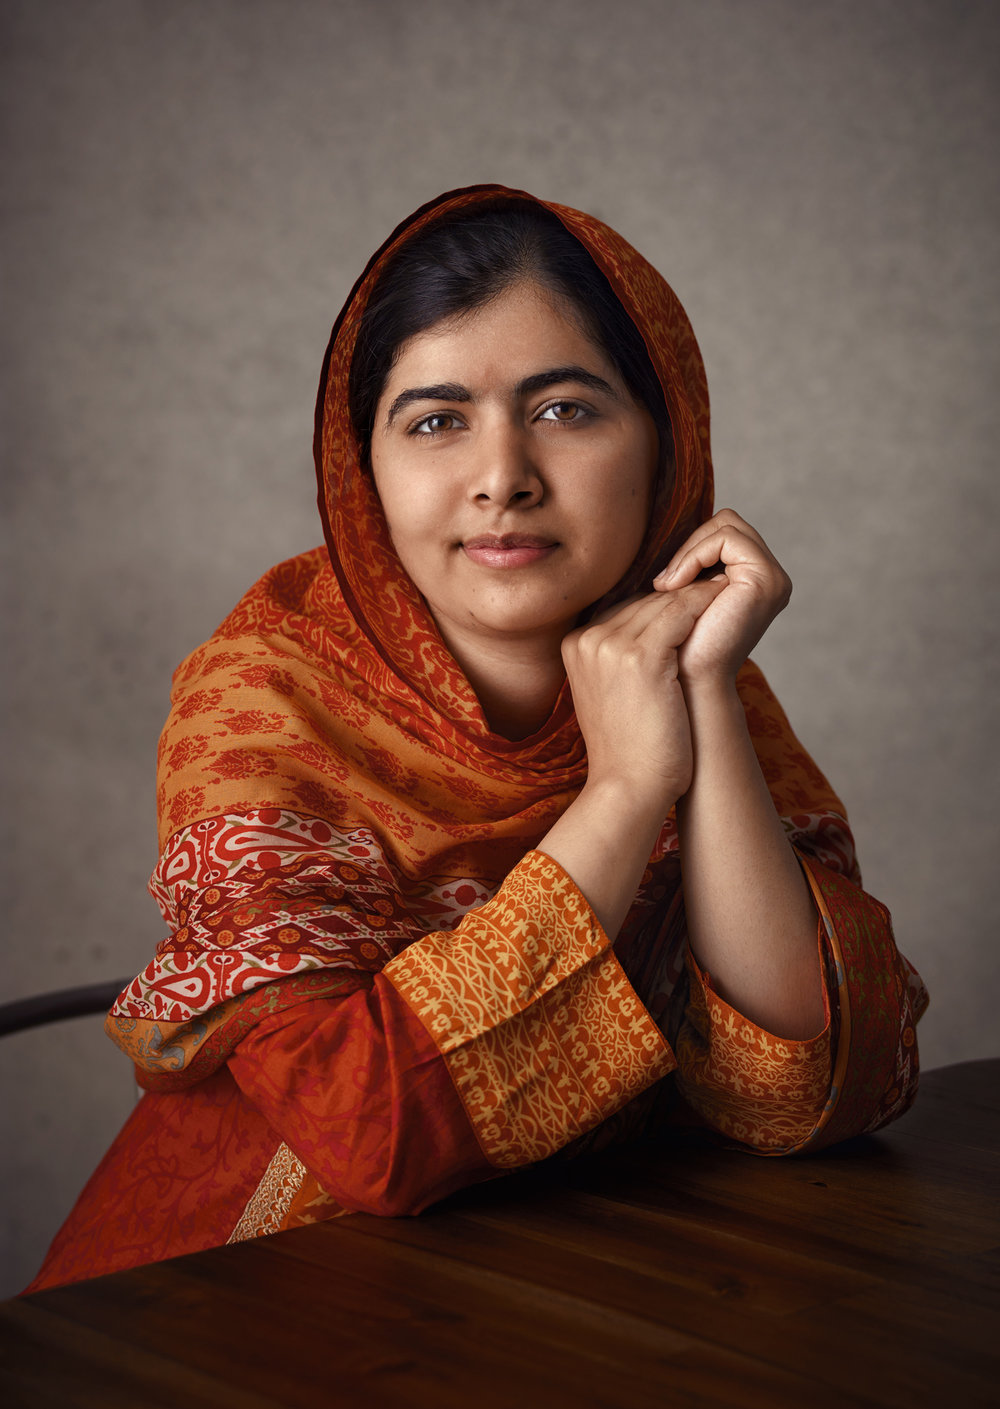 Malala Yousafzai - Youngest-ever Nobel Prize laureate, Nobel Peace Prize recipient